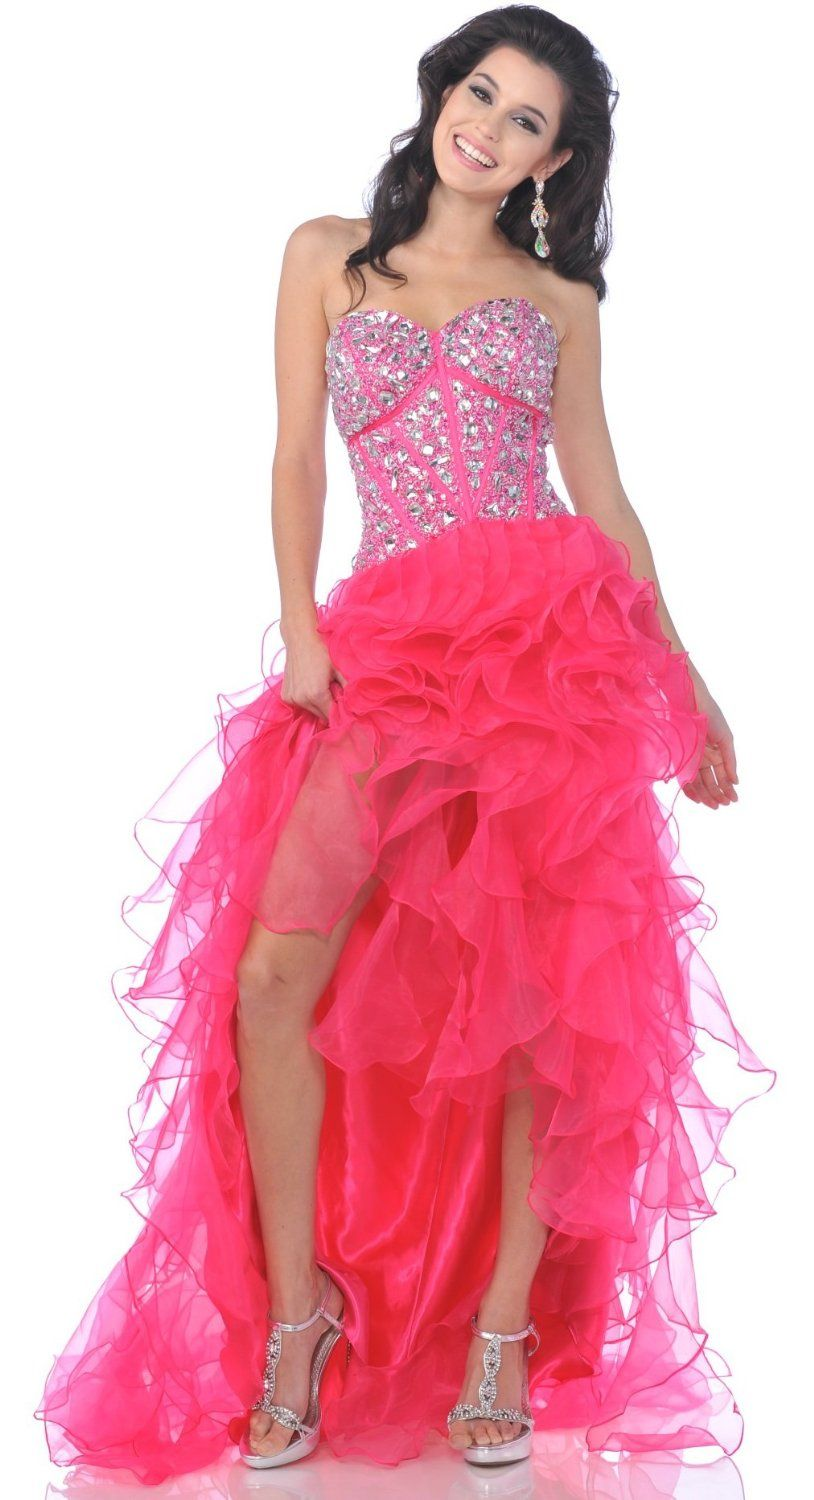 Zeilei Corset Beaded Strapless Hi-low Prom Dress | Chicas lindas ...